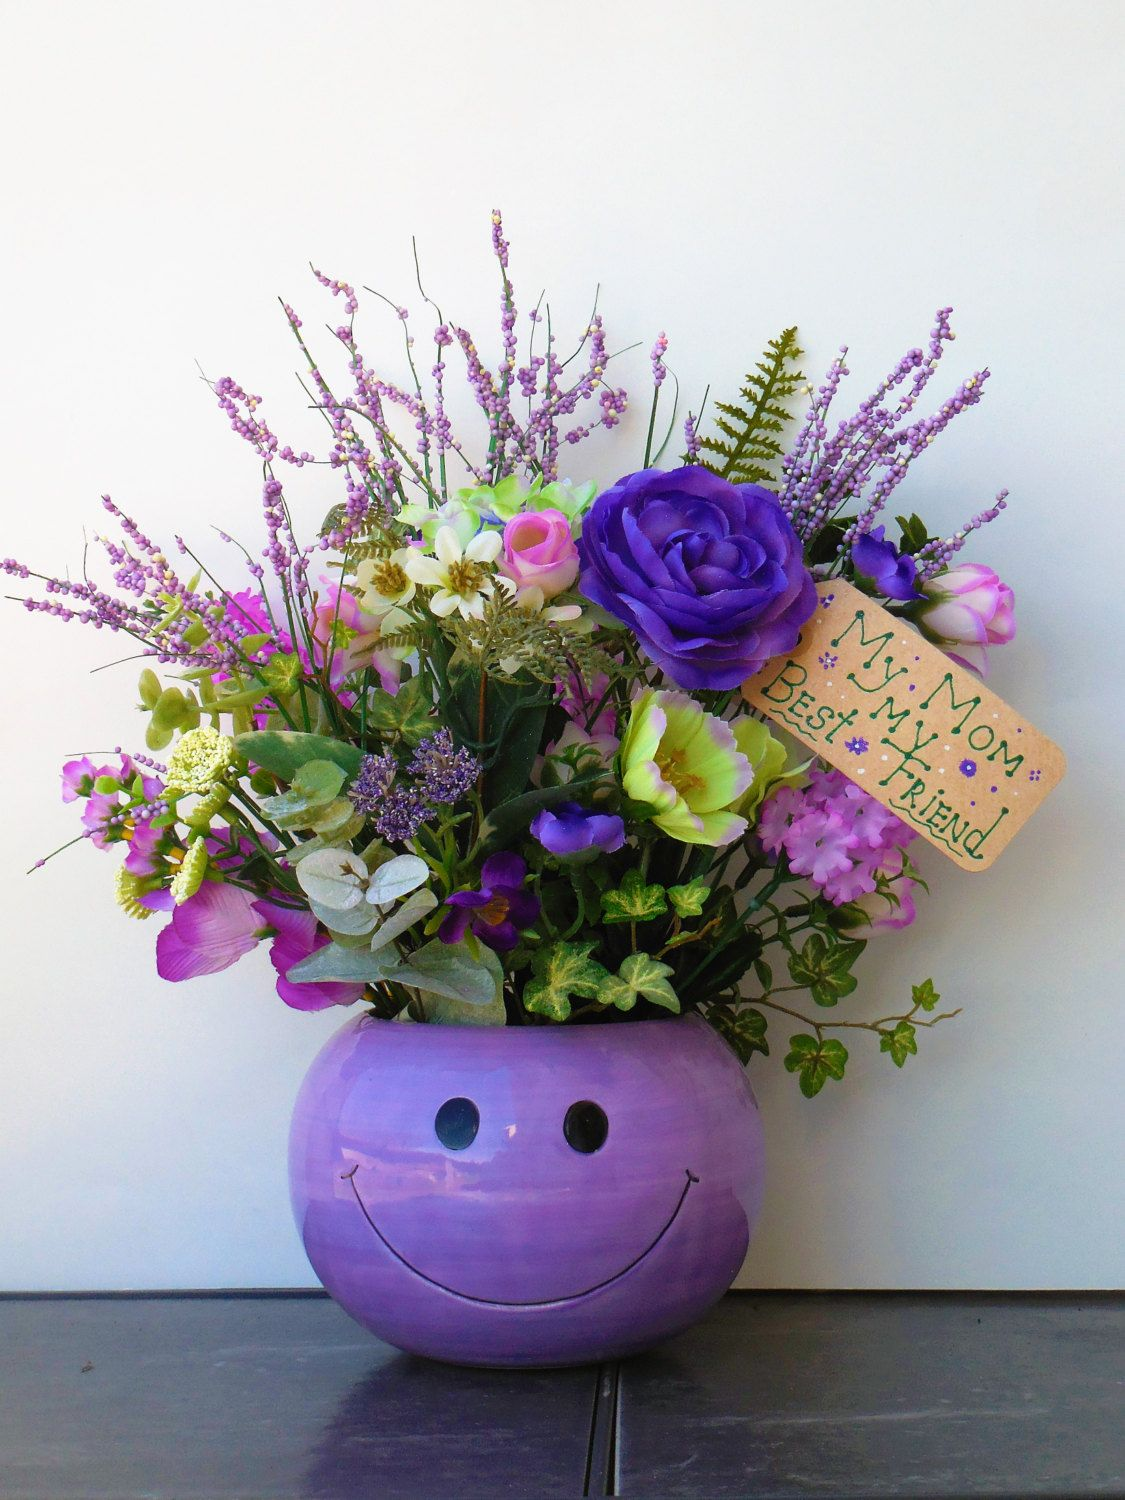 Flower arrangement mothers day floral purple decor smiley face flower arrangement mothers day floral purple decor smiley face decor summer arrangement spring flowers mothers gift lilac color izmirmasajfo